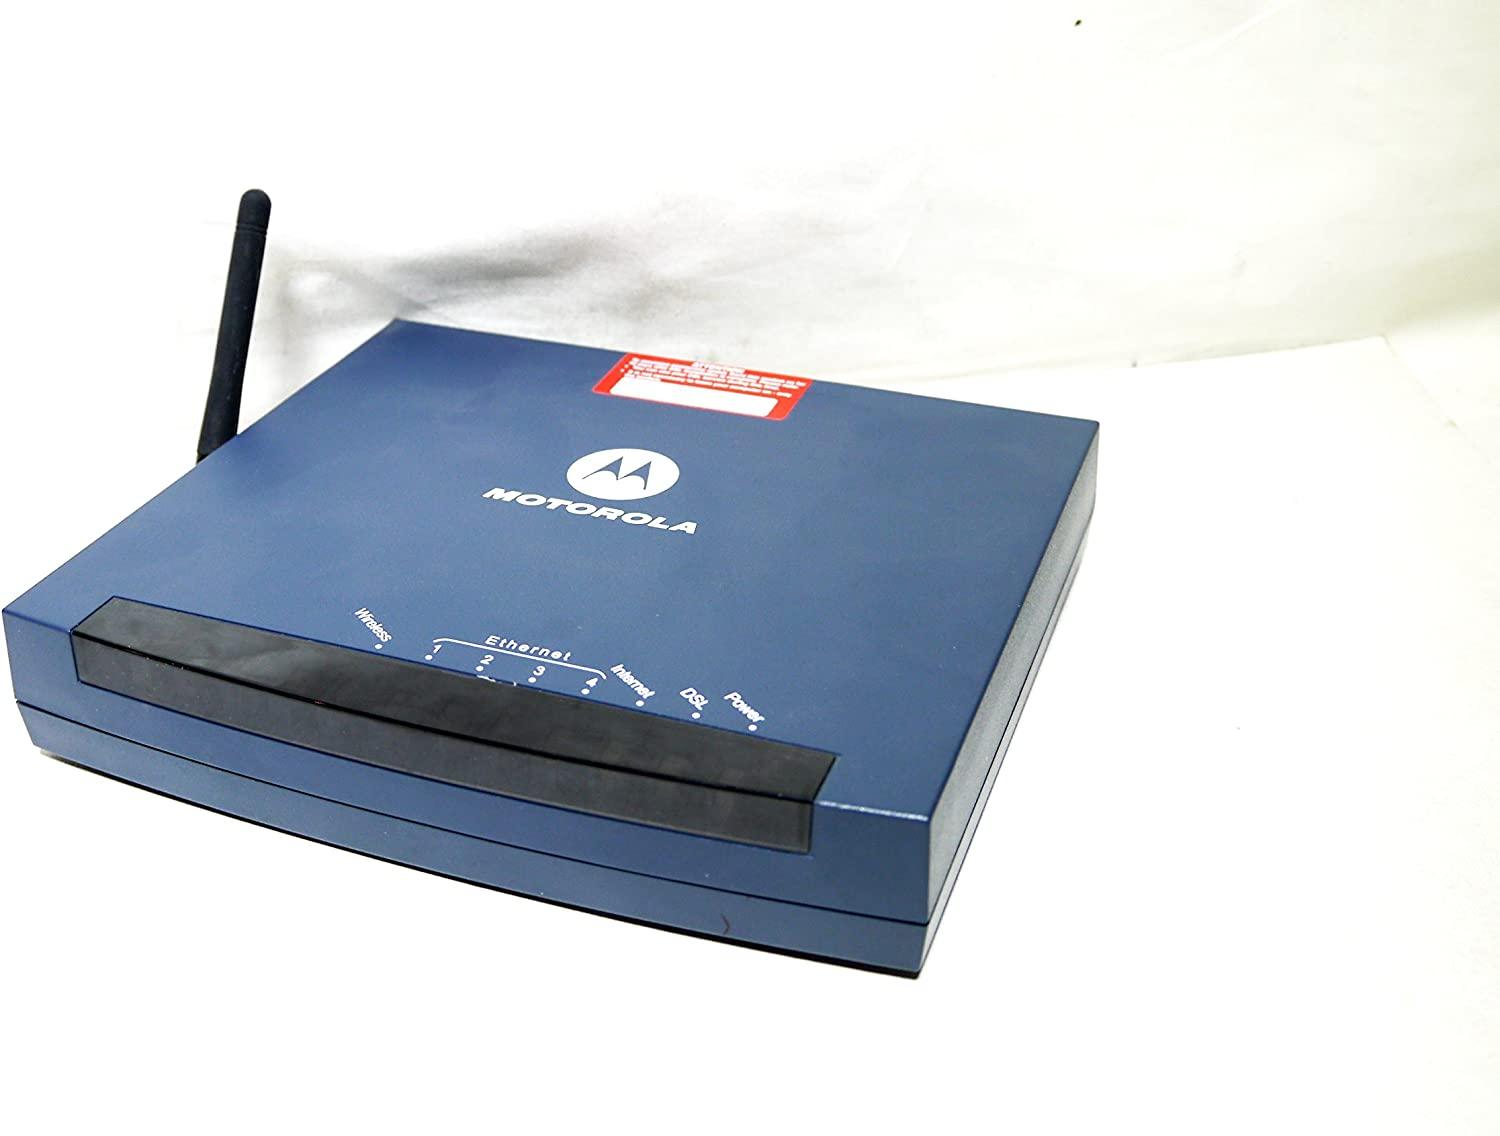 Netopia 3347-02 ADSL2 Wireless Router COMES WITHOUT THE CHARGER